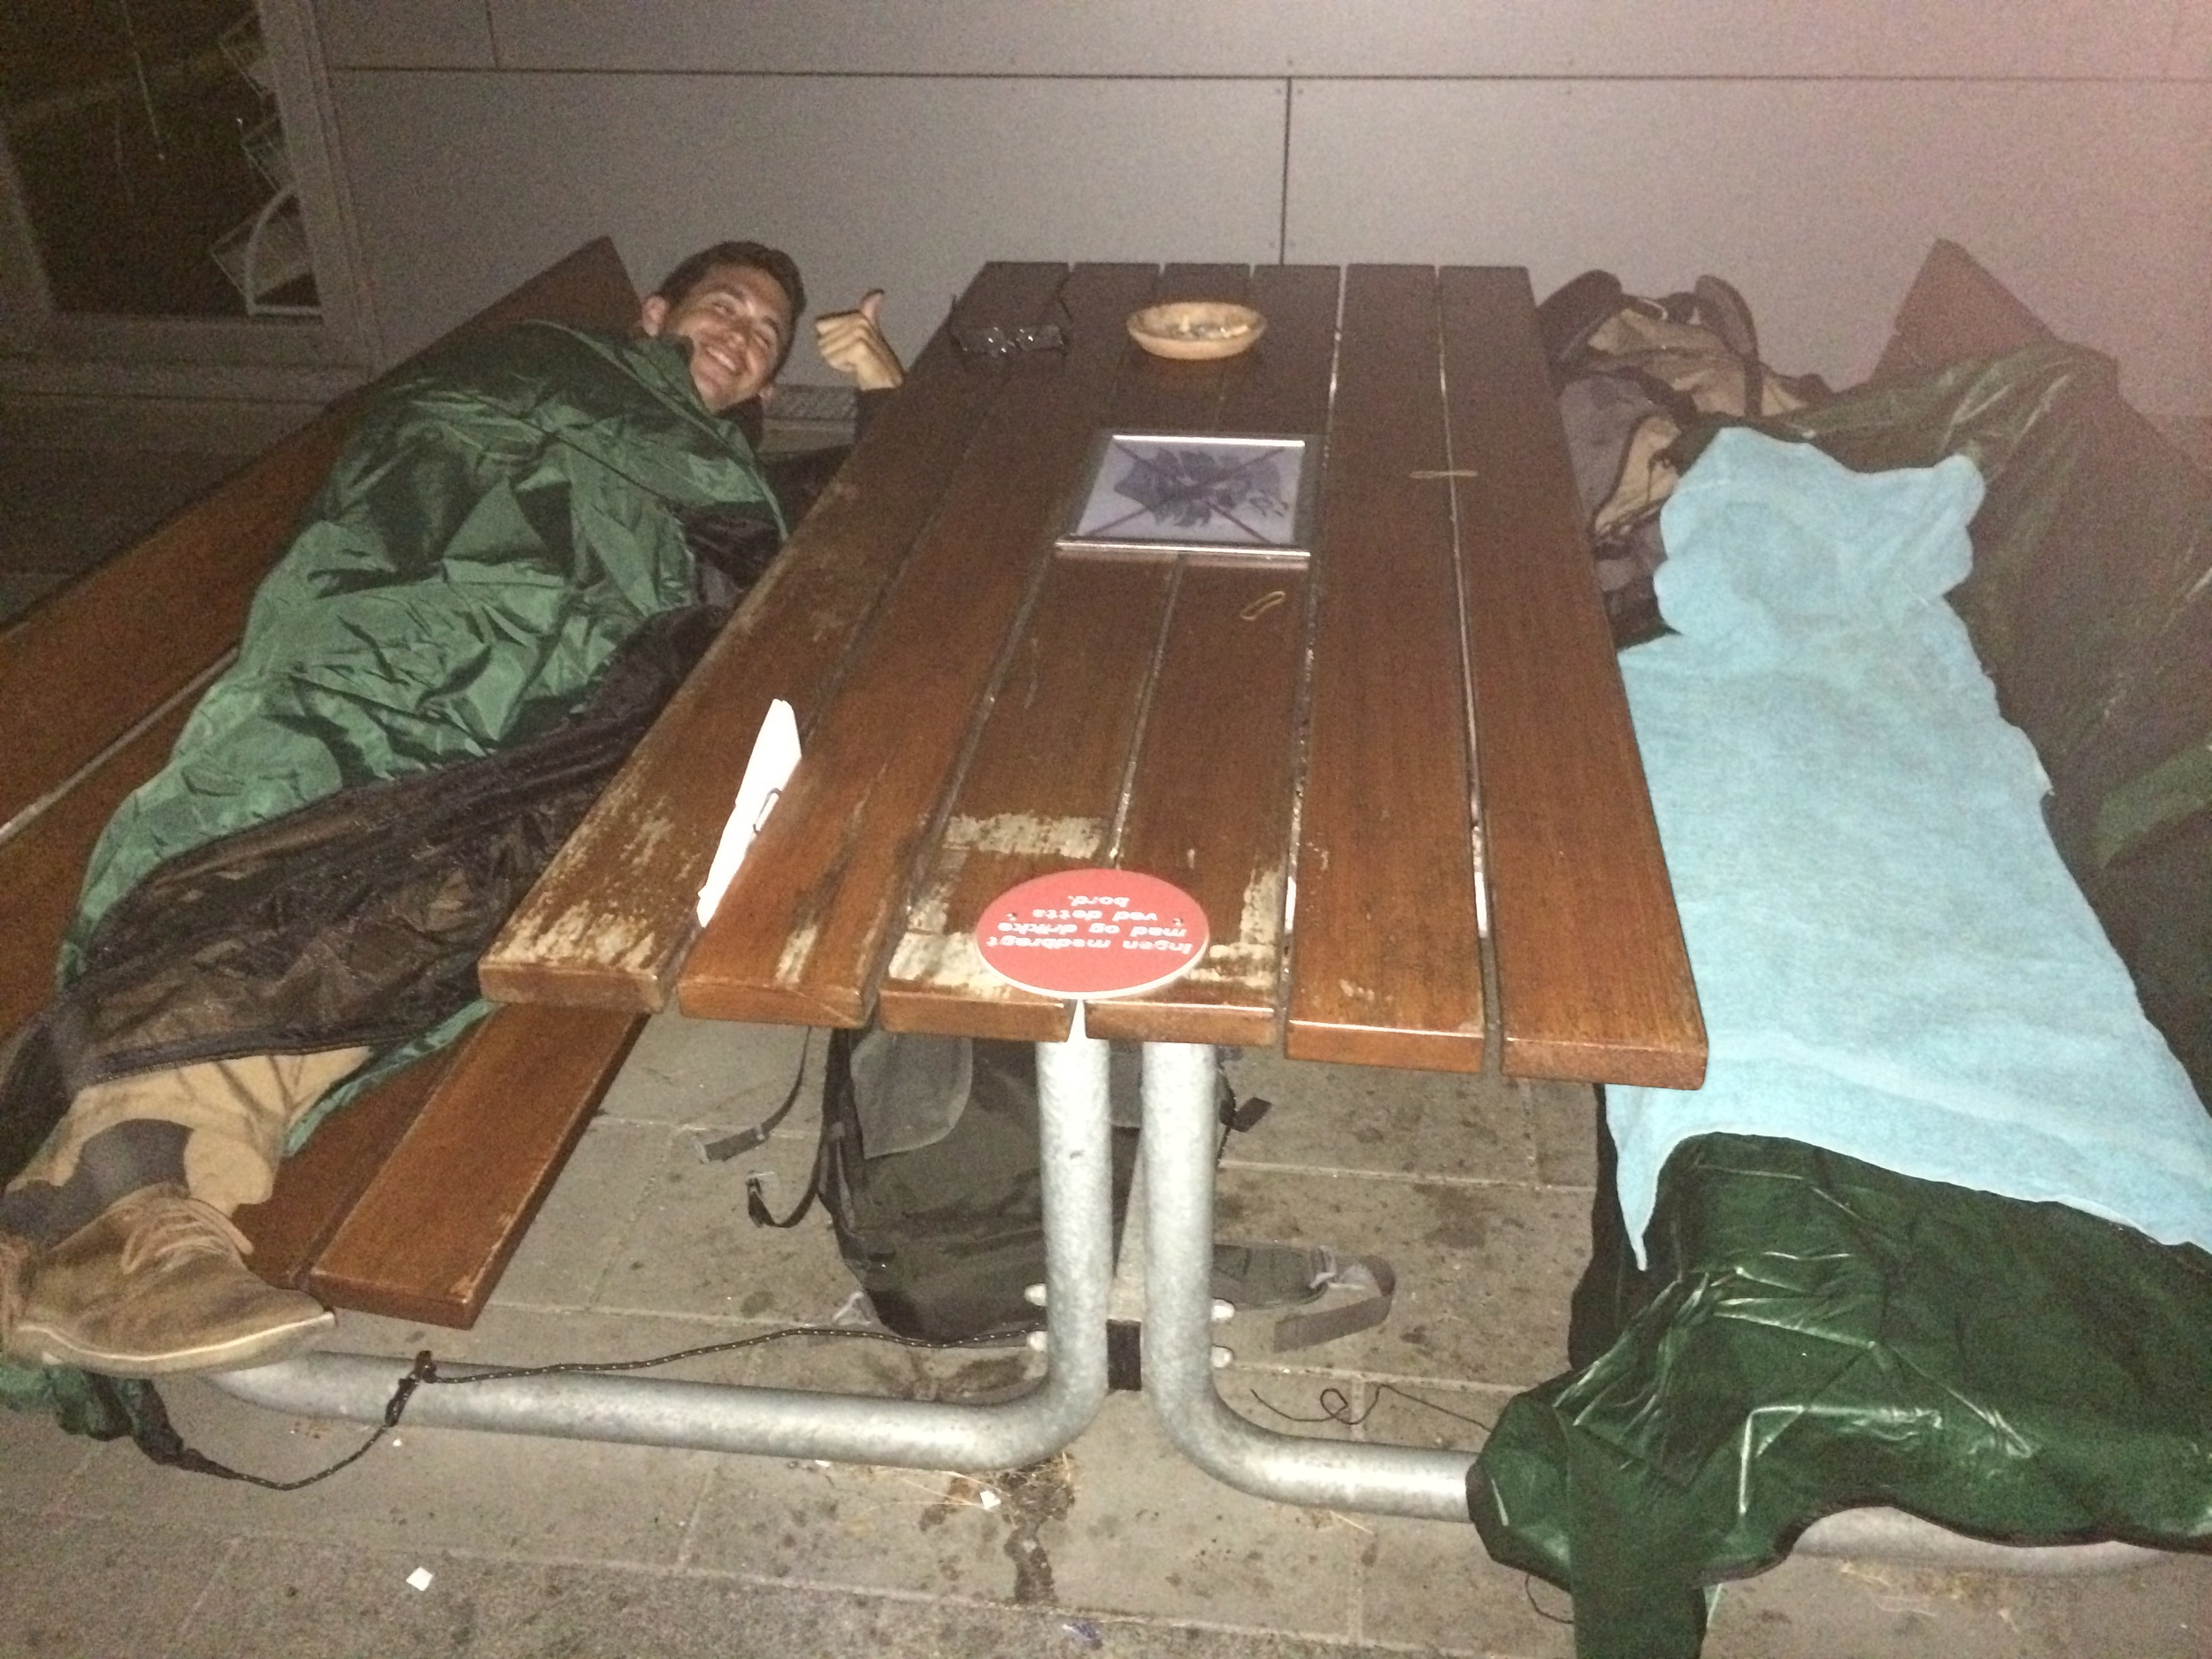 All it takes is one night on the streets to appreciate the comforts of home.